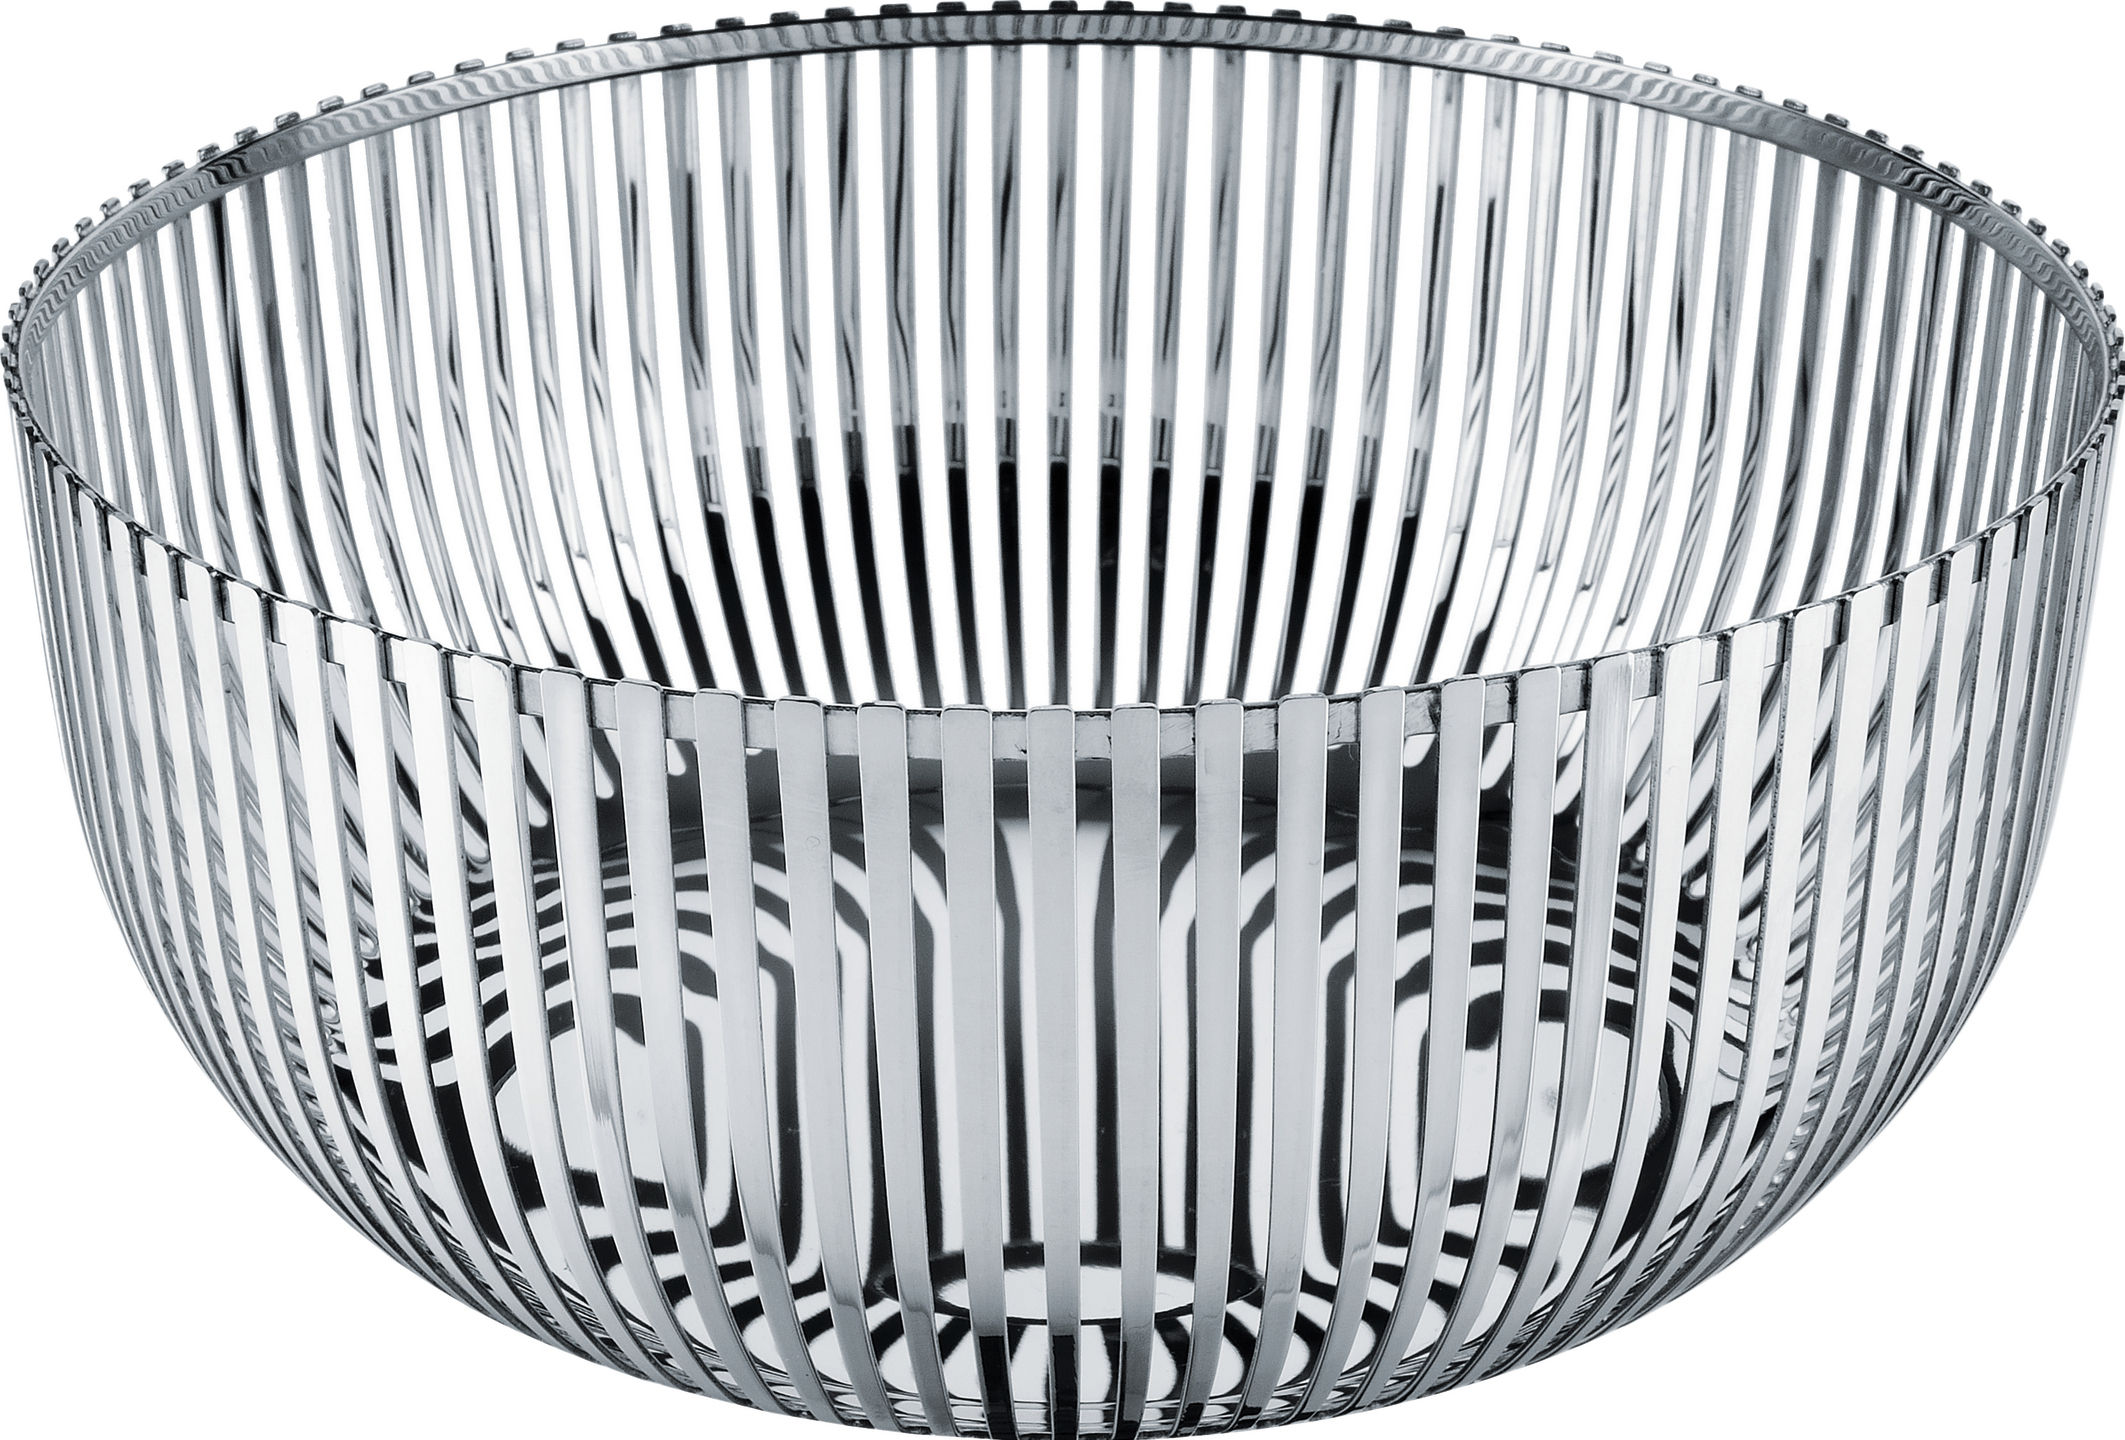 Tableware - Fruit Bowls & Centrepieces - PCH05 par Pierre Charpin Basket - by Pierre Charpin / Ø 24 cm by Alessi - Ø 24 cm - Mirror polished steel - Stainless steel 18/10